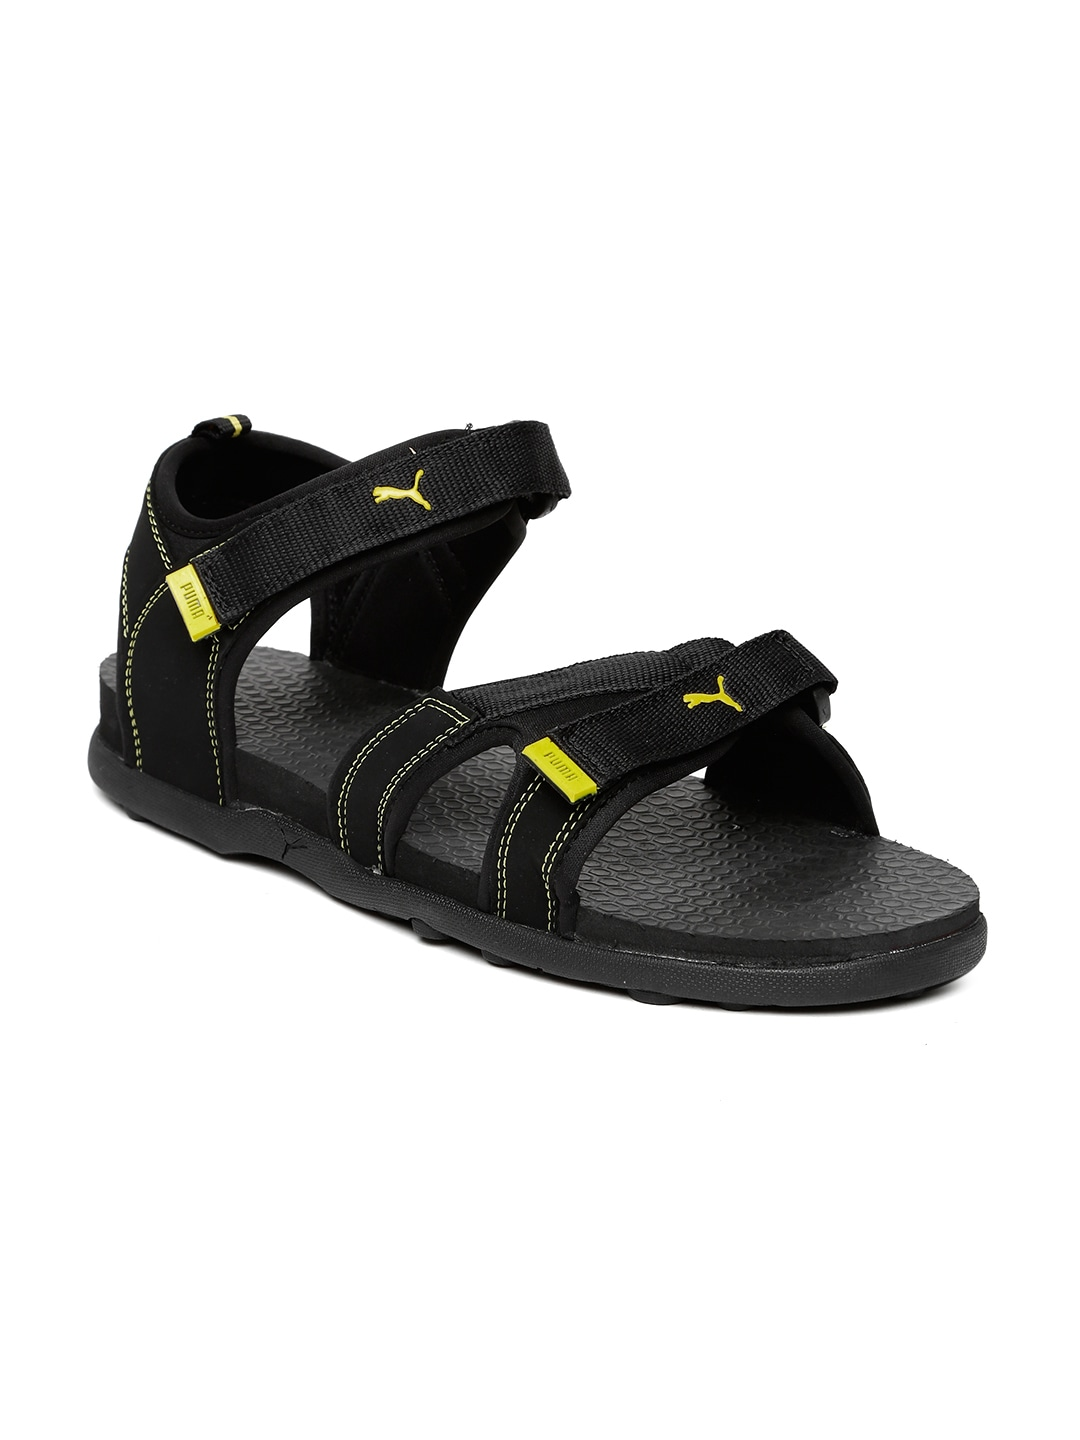 cba270a86597 Puma 36451803 Unisex Black And Yellow Techno Idp Sports Sandals- Price in  India